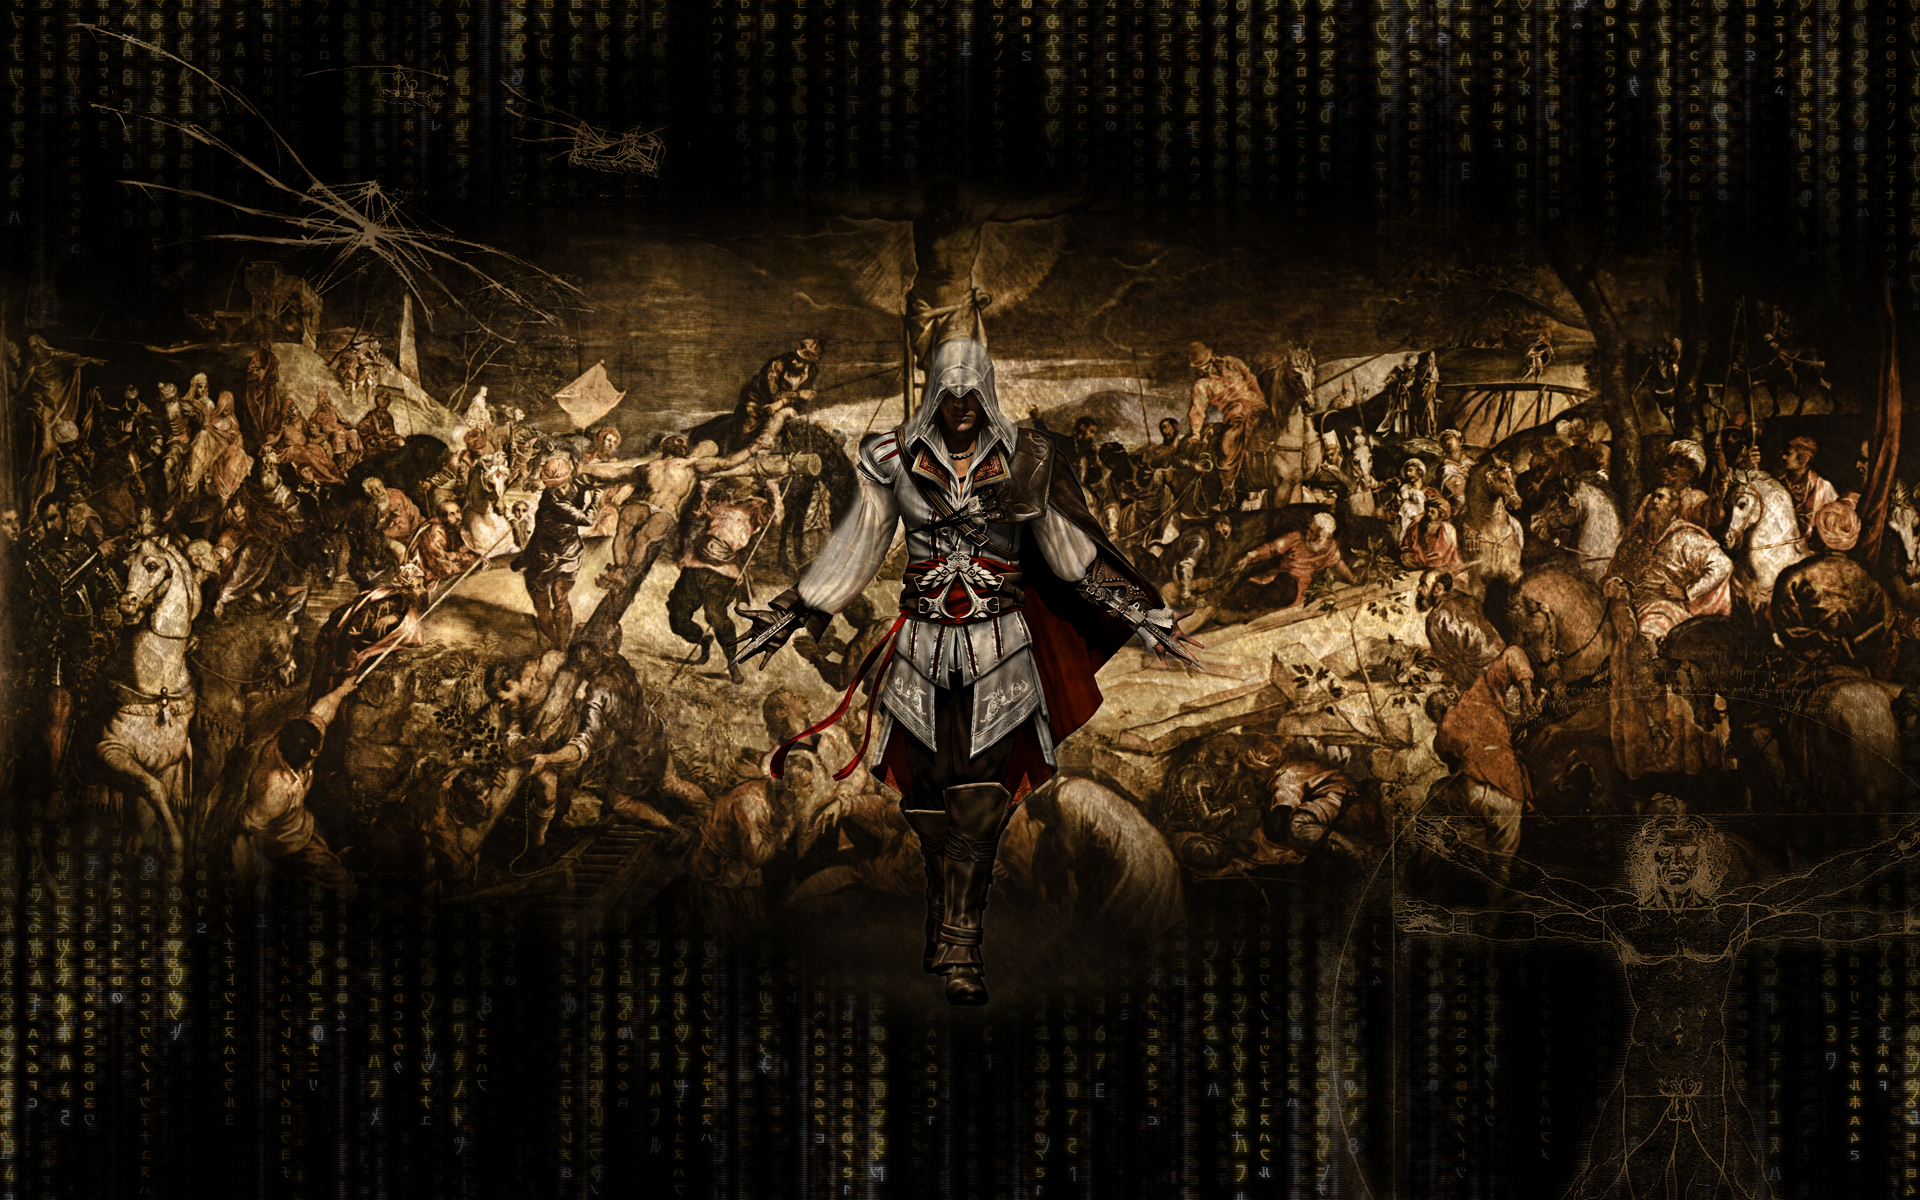 Free Download Assassins Creed Desktop Wallpapers 1920x1200 For Your Desktop Mobile Tablet Explore 49 Assassin S Creed Desktop Wallpaper Assassin S Creed Revelations Wallpaper Assassin S Creed Live Wallpaper Assassin S Creed Unity Wallpaper